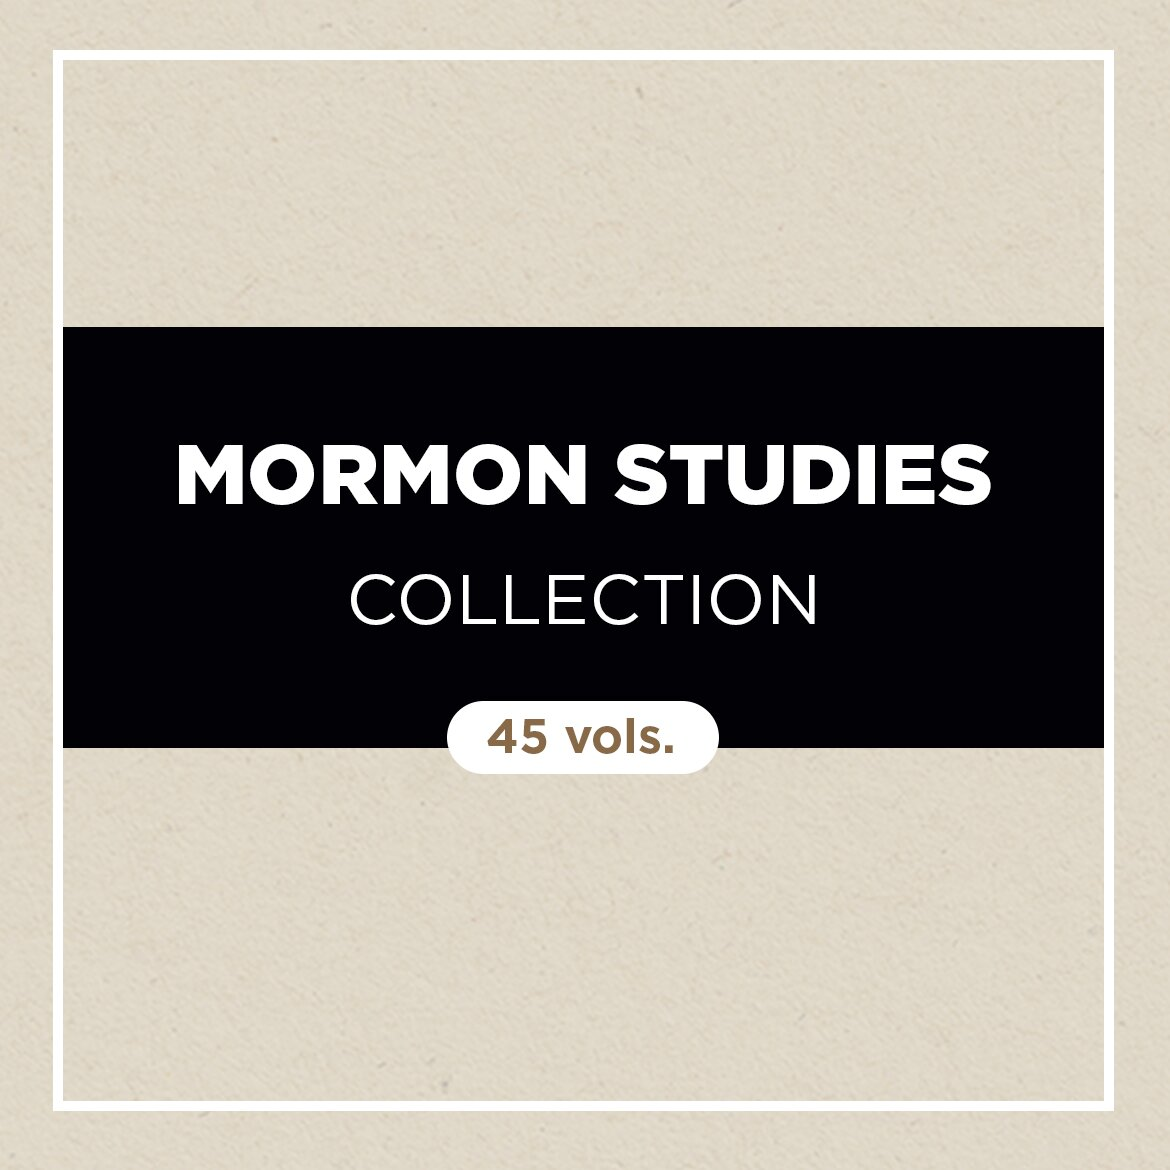 Mormon Studies Collection (45 vols.)